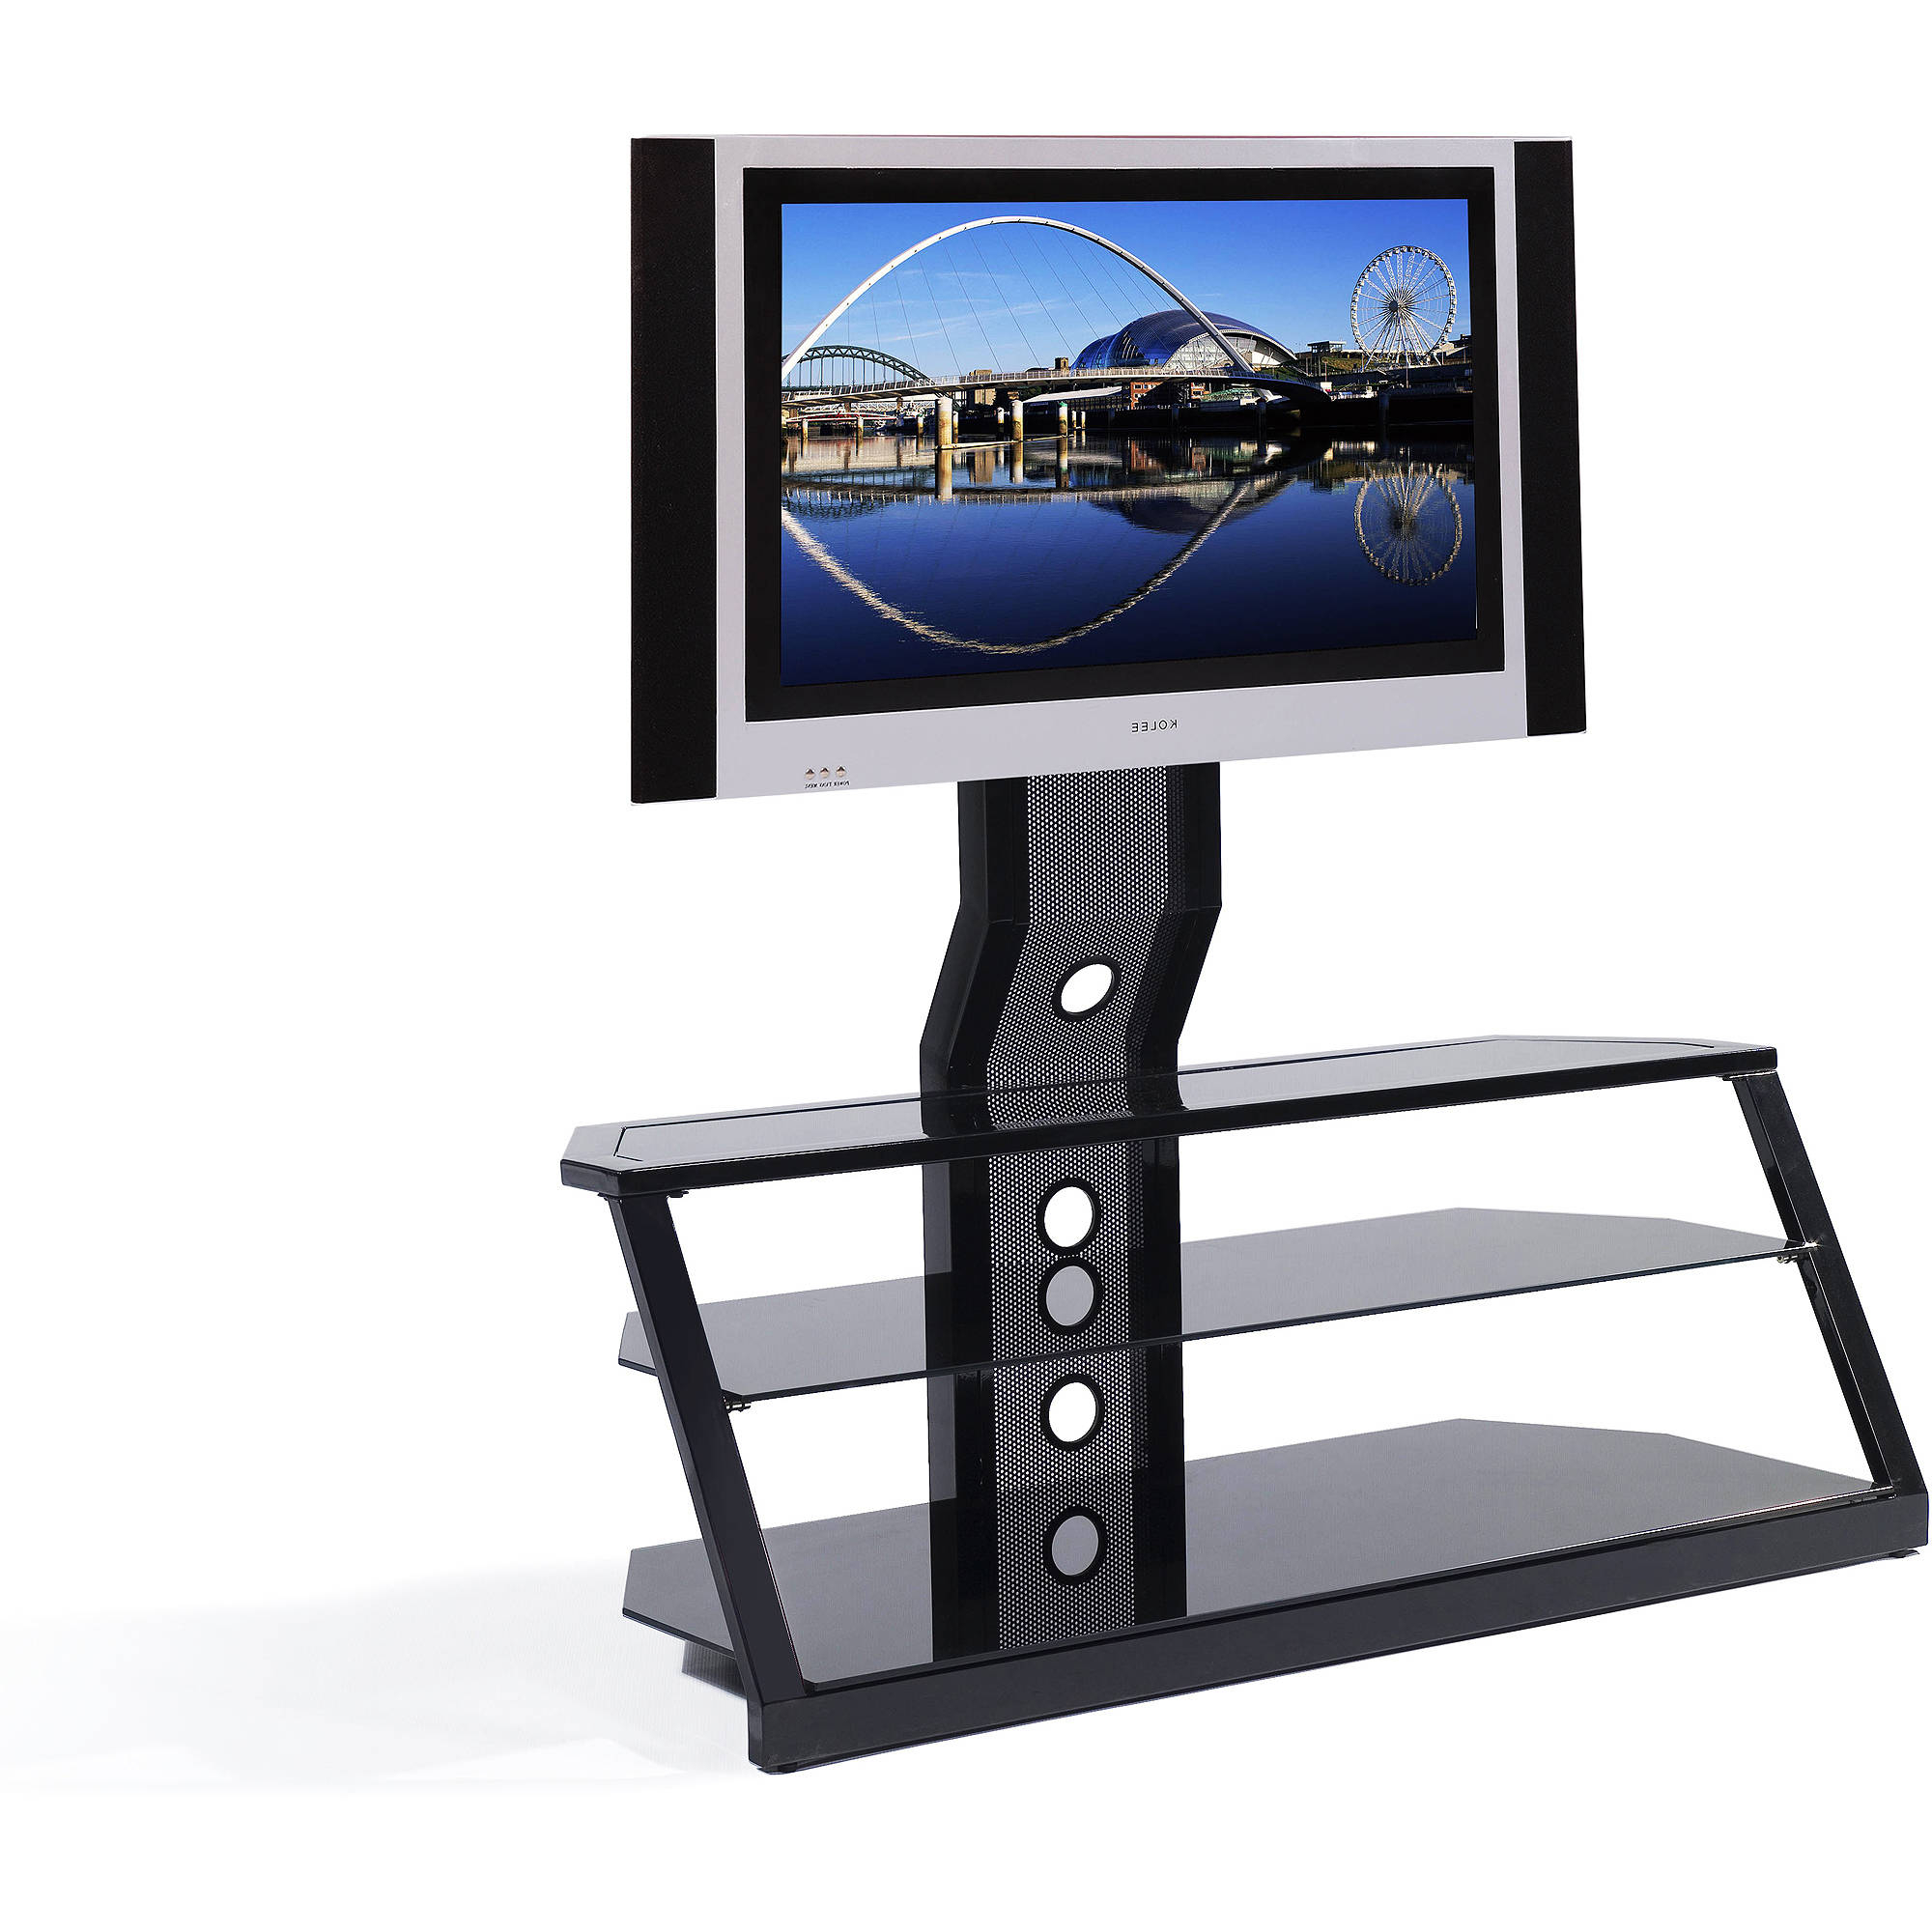 Cordoba Lcd/plasma Flat Panel Mount Tv C – Walmart Pertaining To Newest Vizio 24 Inch Tv Stands (View 9 of 20)